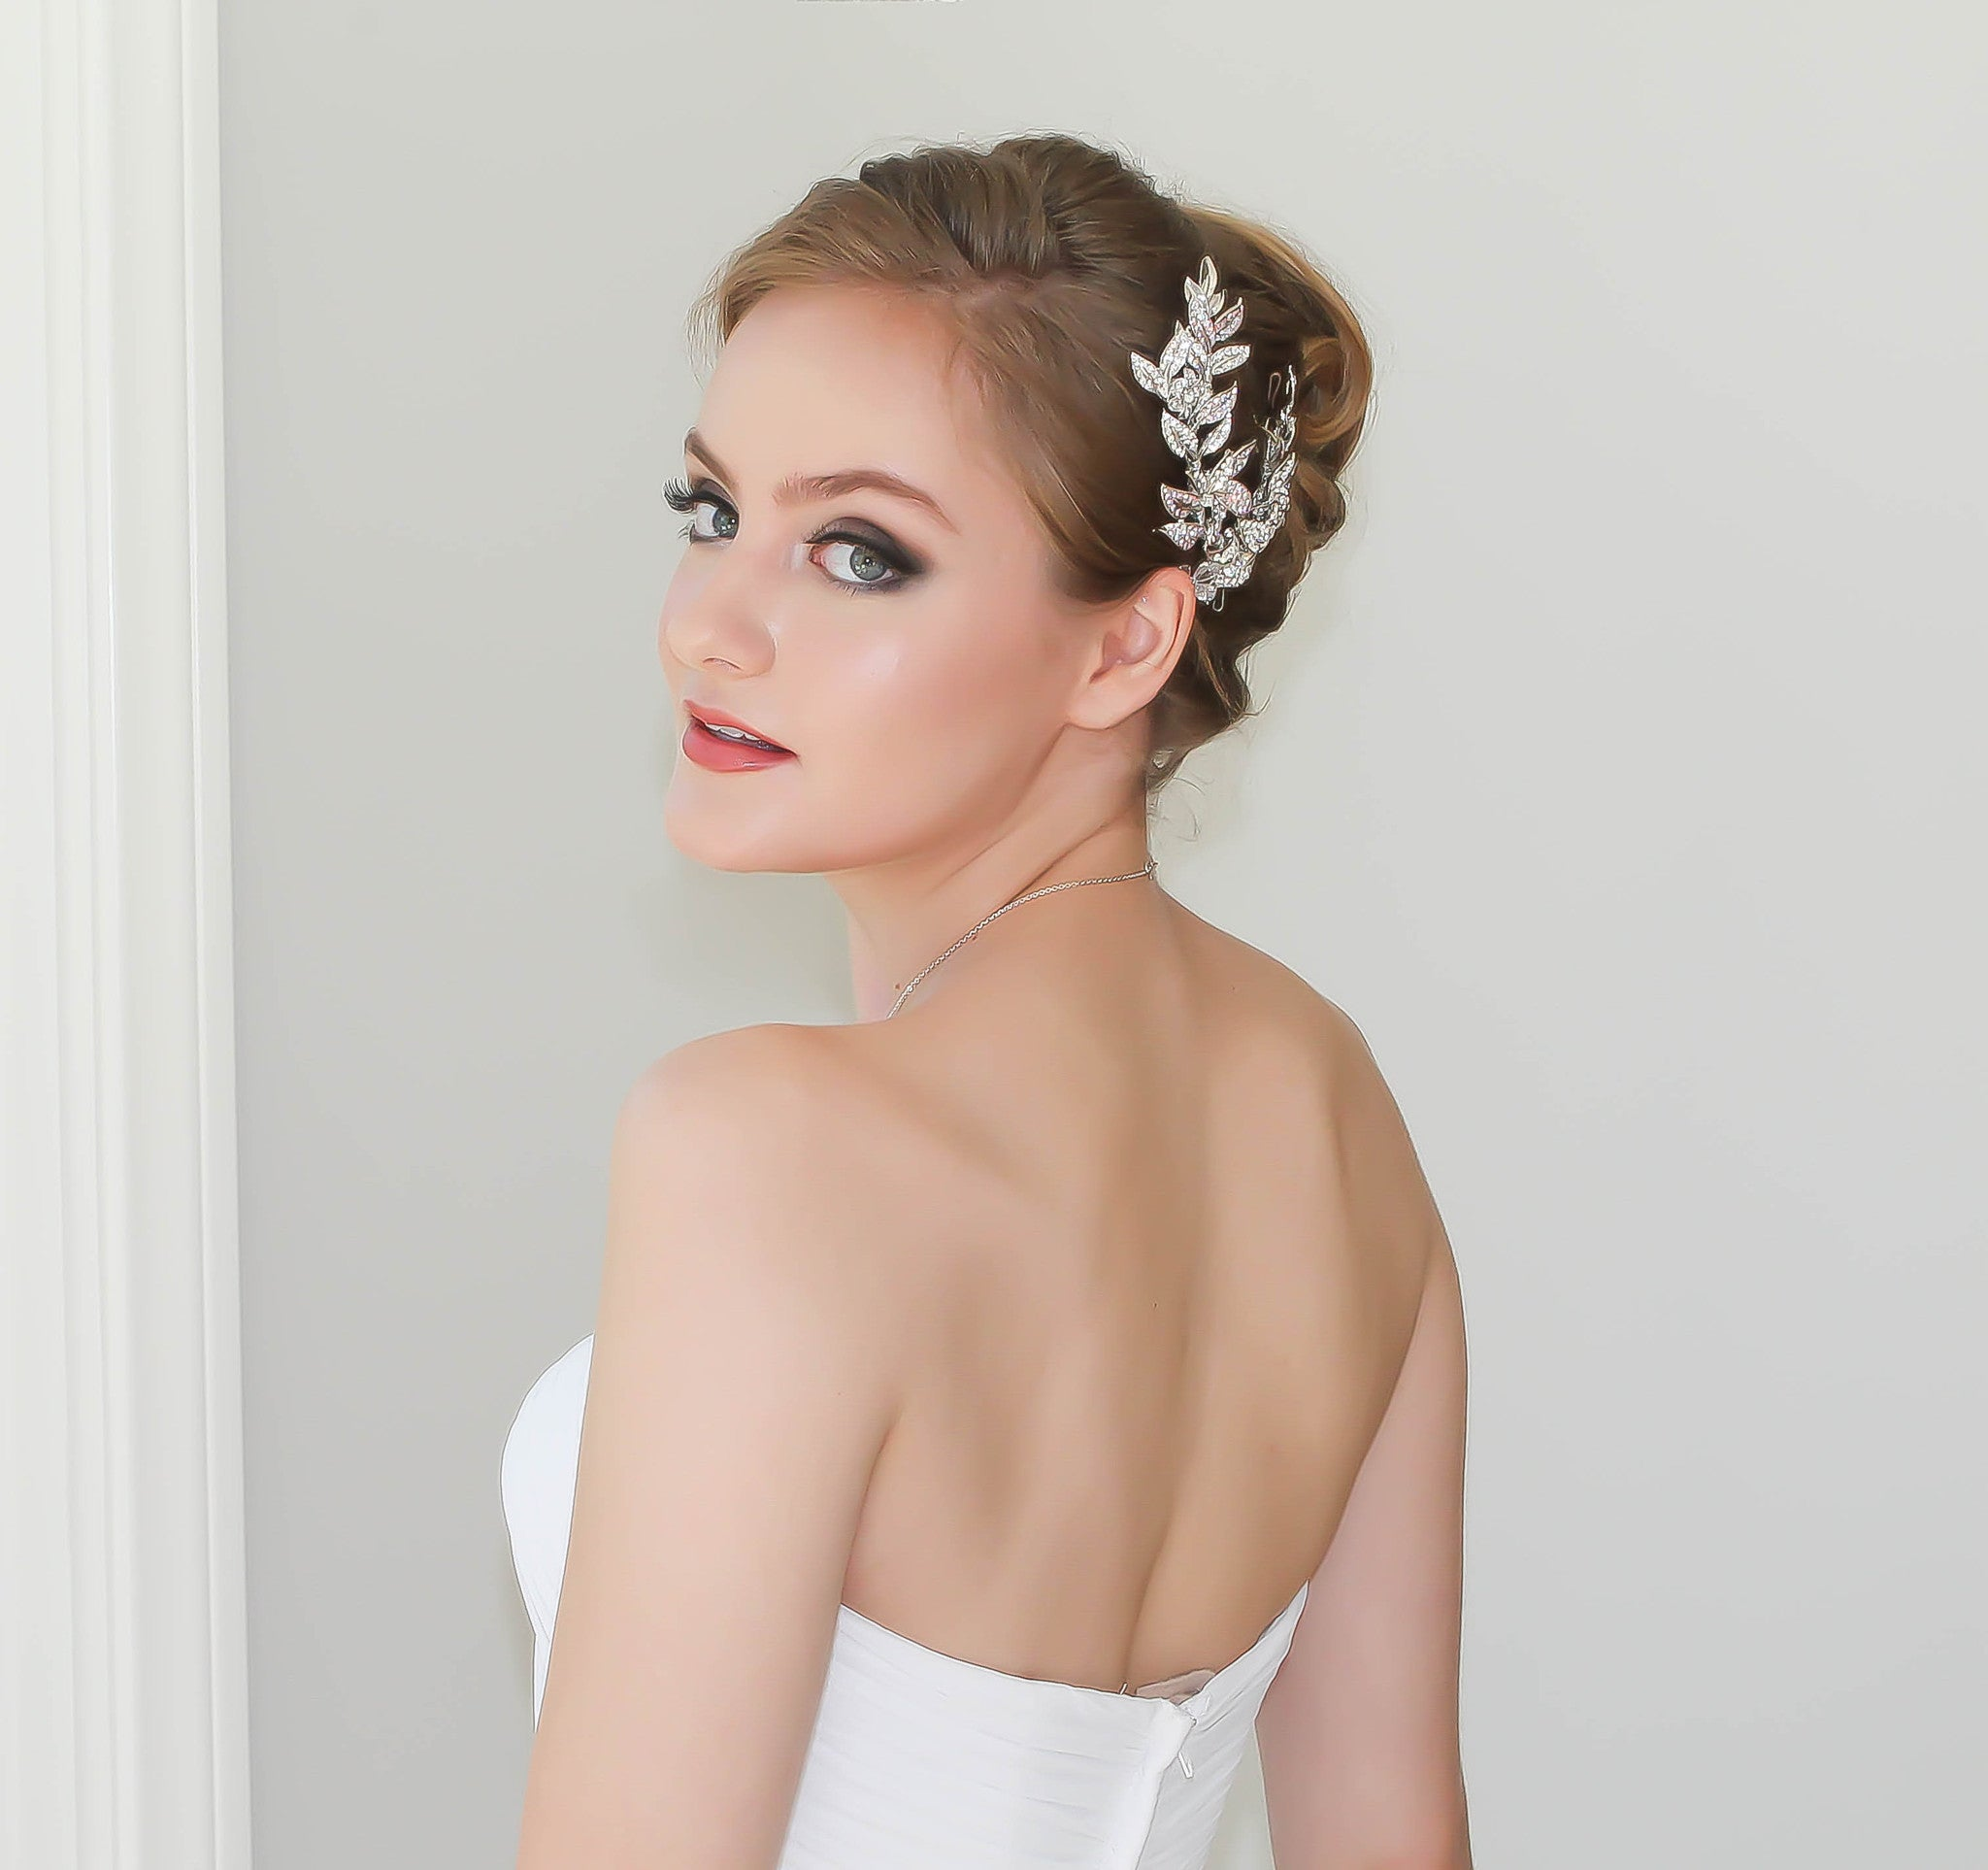 Bridal Headpiece Handcrafted Swarovski Crystals